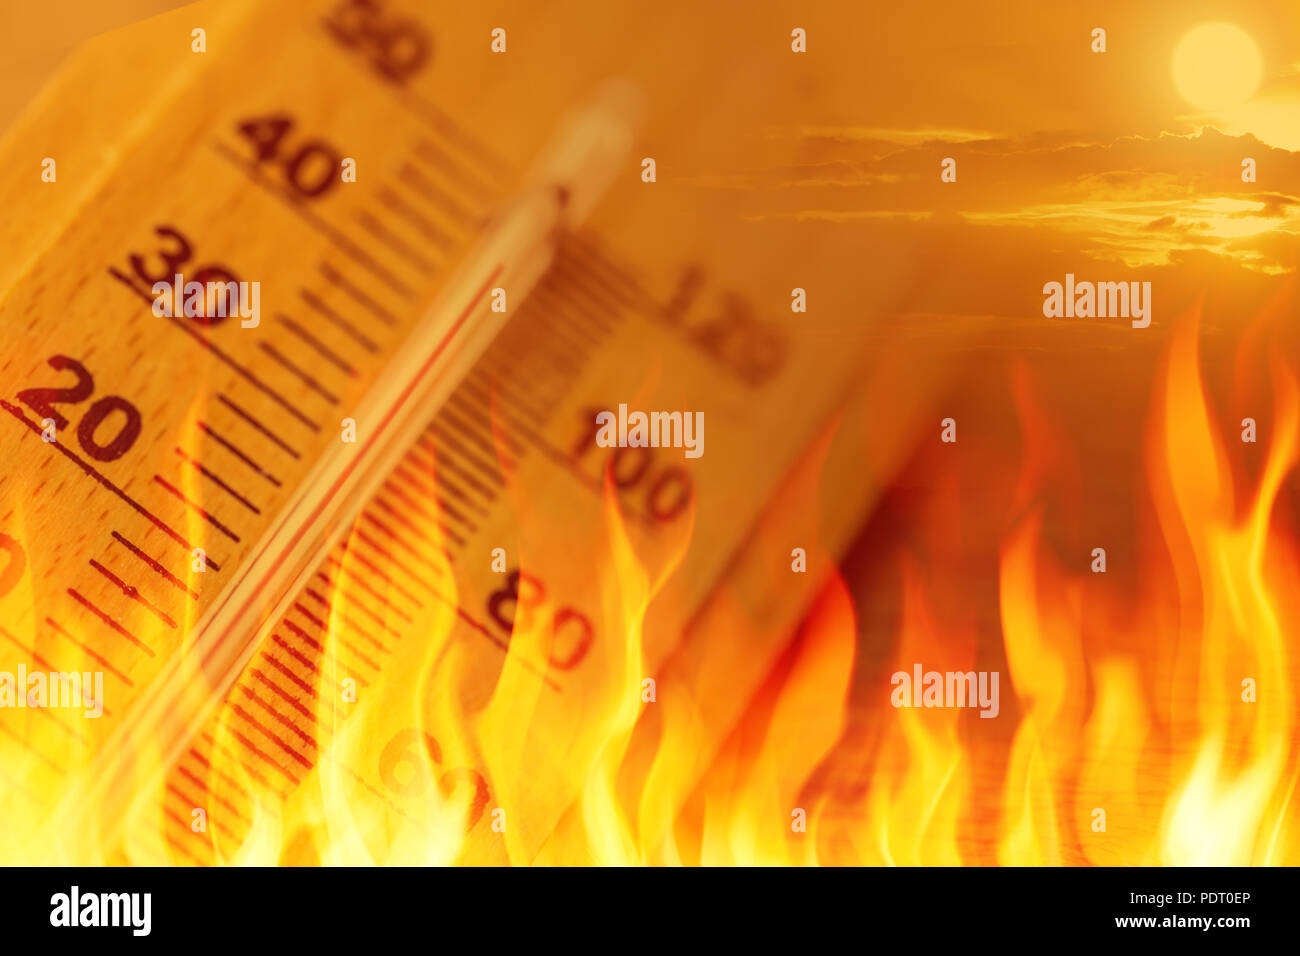 global warming climate change sign high temperature thermometer fire concept - Stock Image